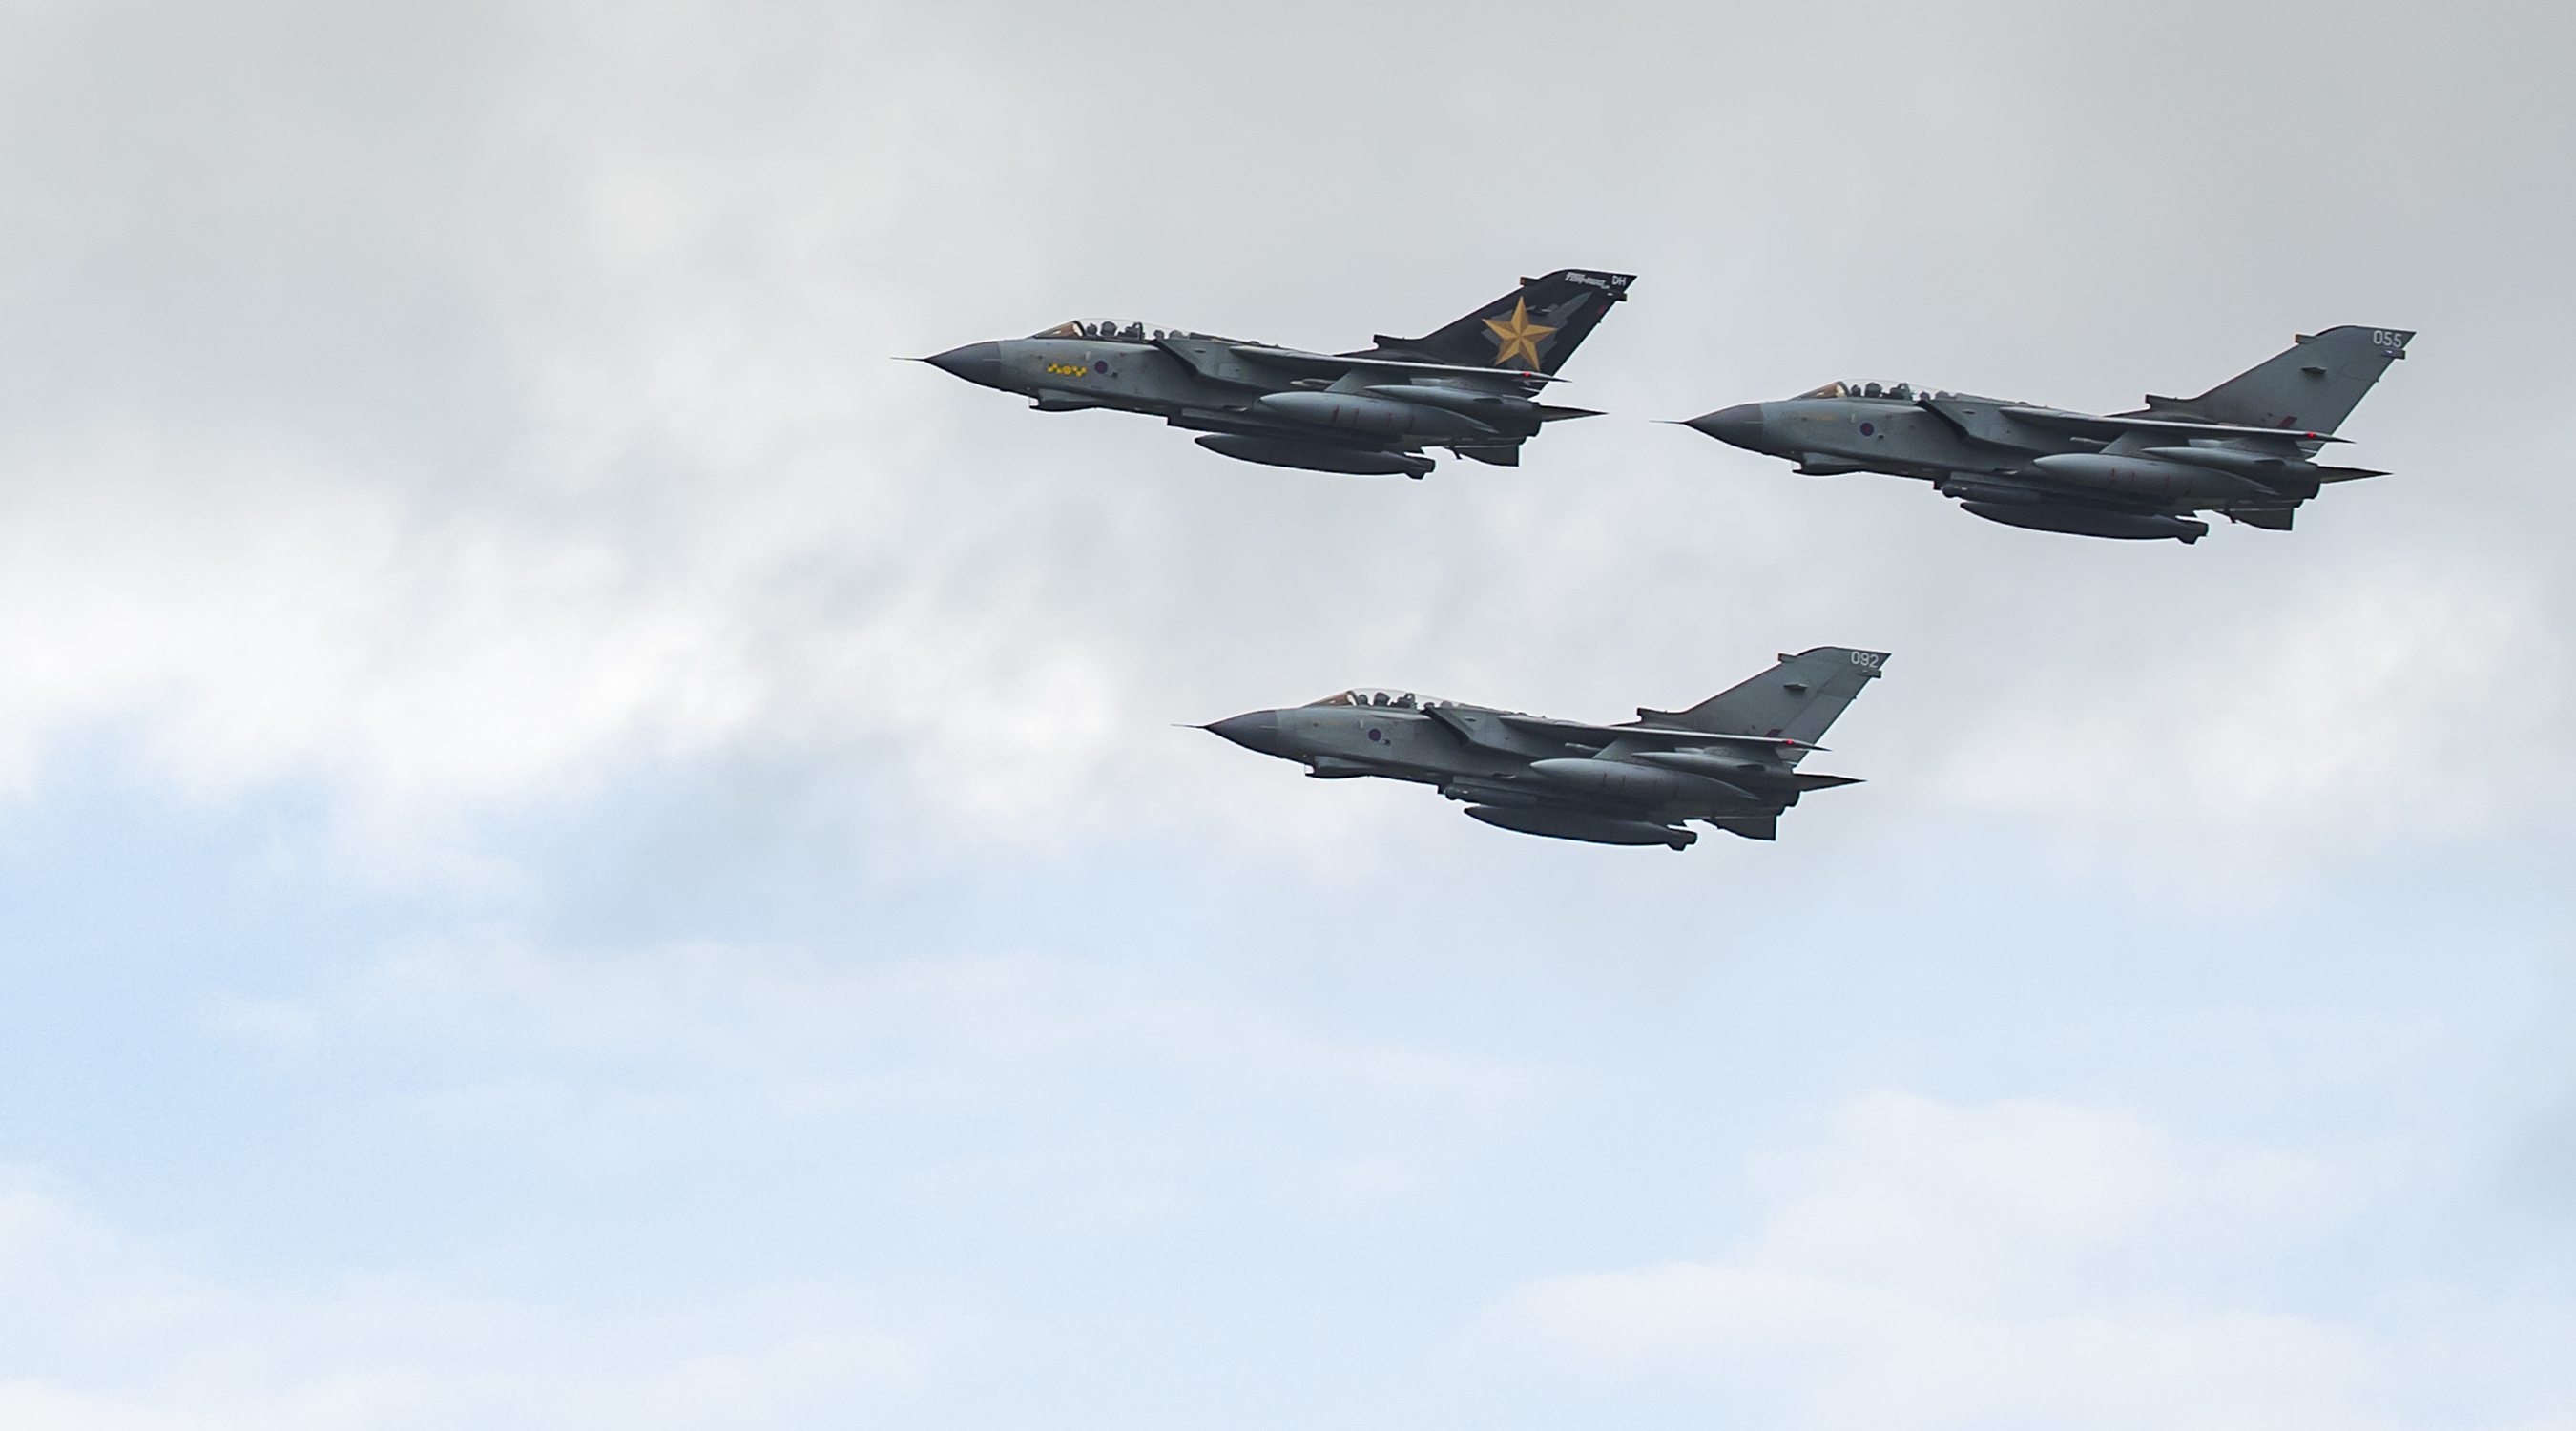 RAF Tornado GR4 jets during a farewell flypast